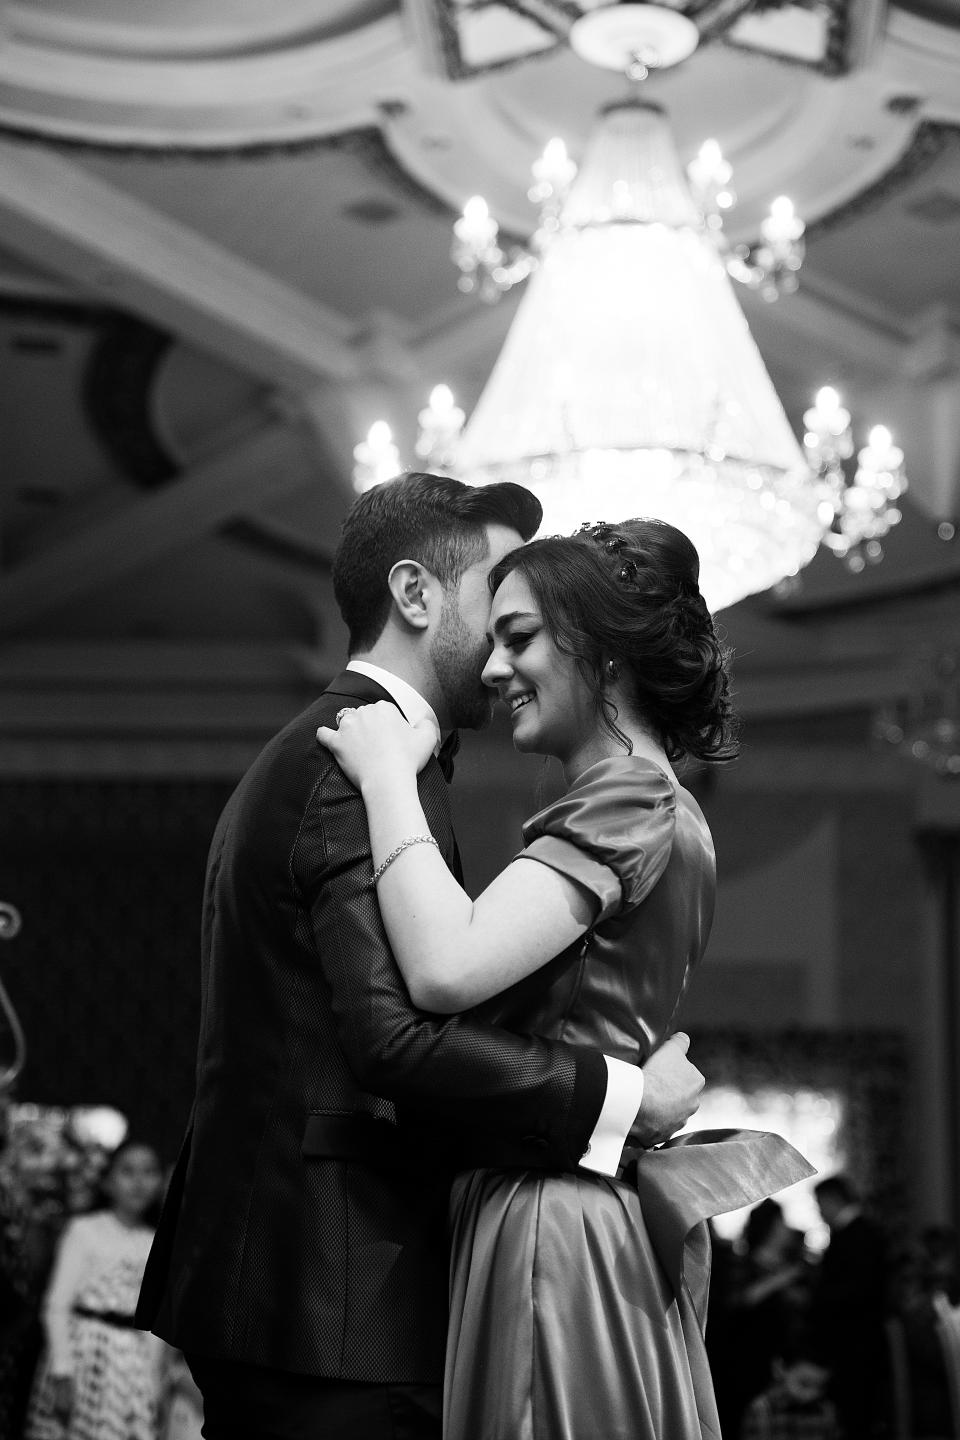 people man woman female male hug smile happy wedding dance black and white party